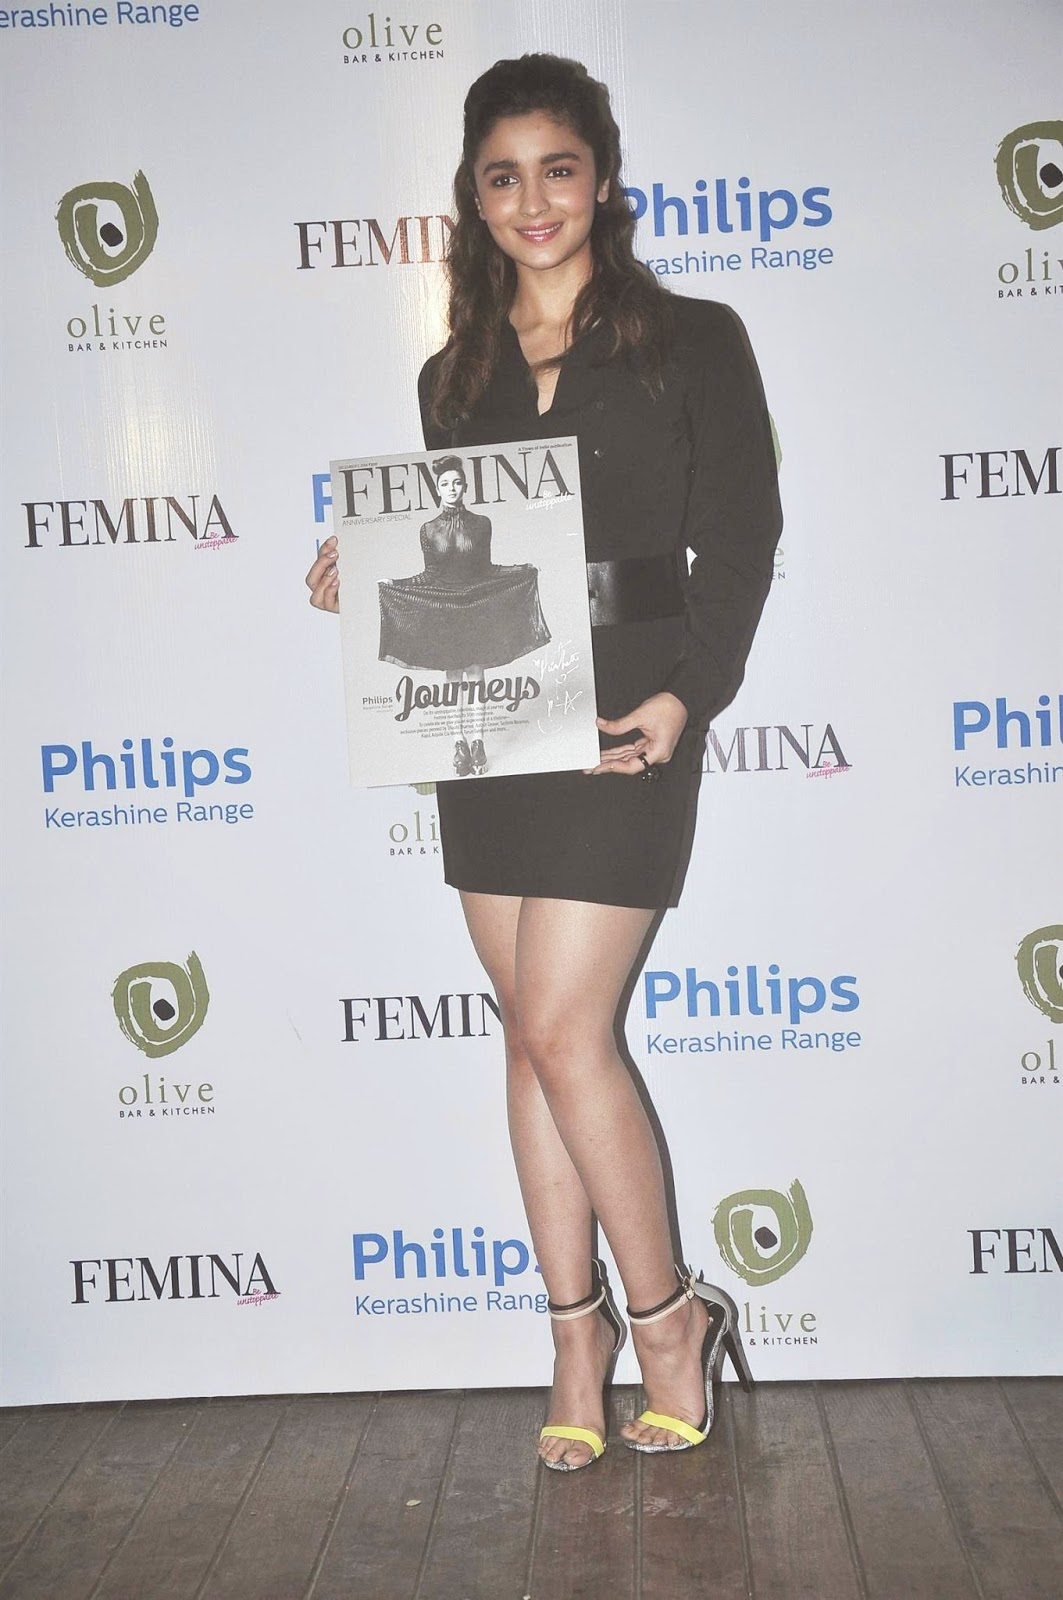 Actress Alia Bhatt launches Femina magazine's 55th anniversary issue